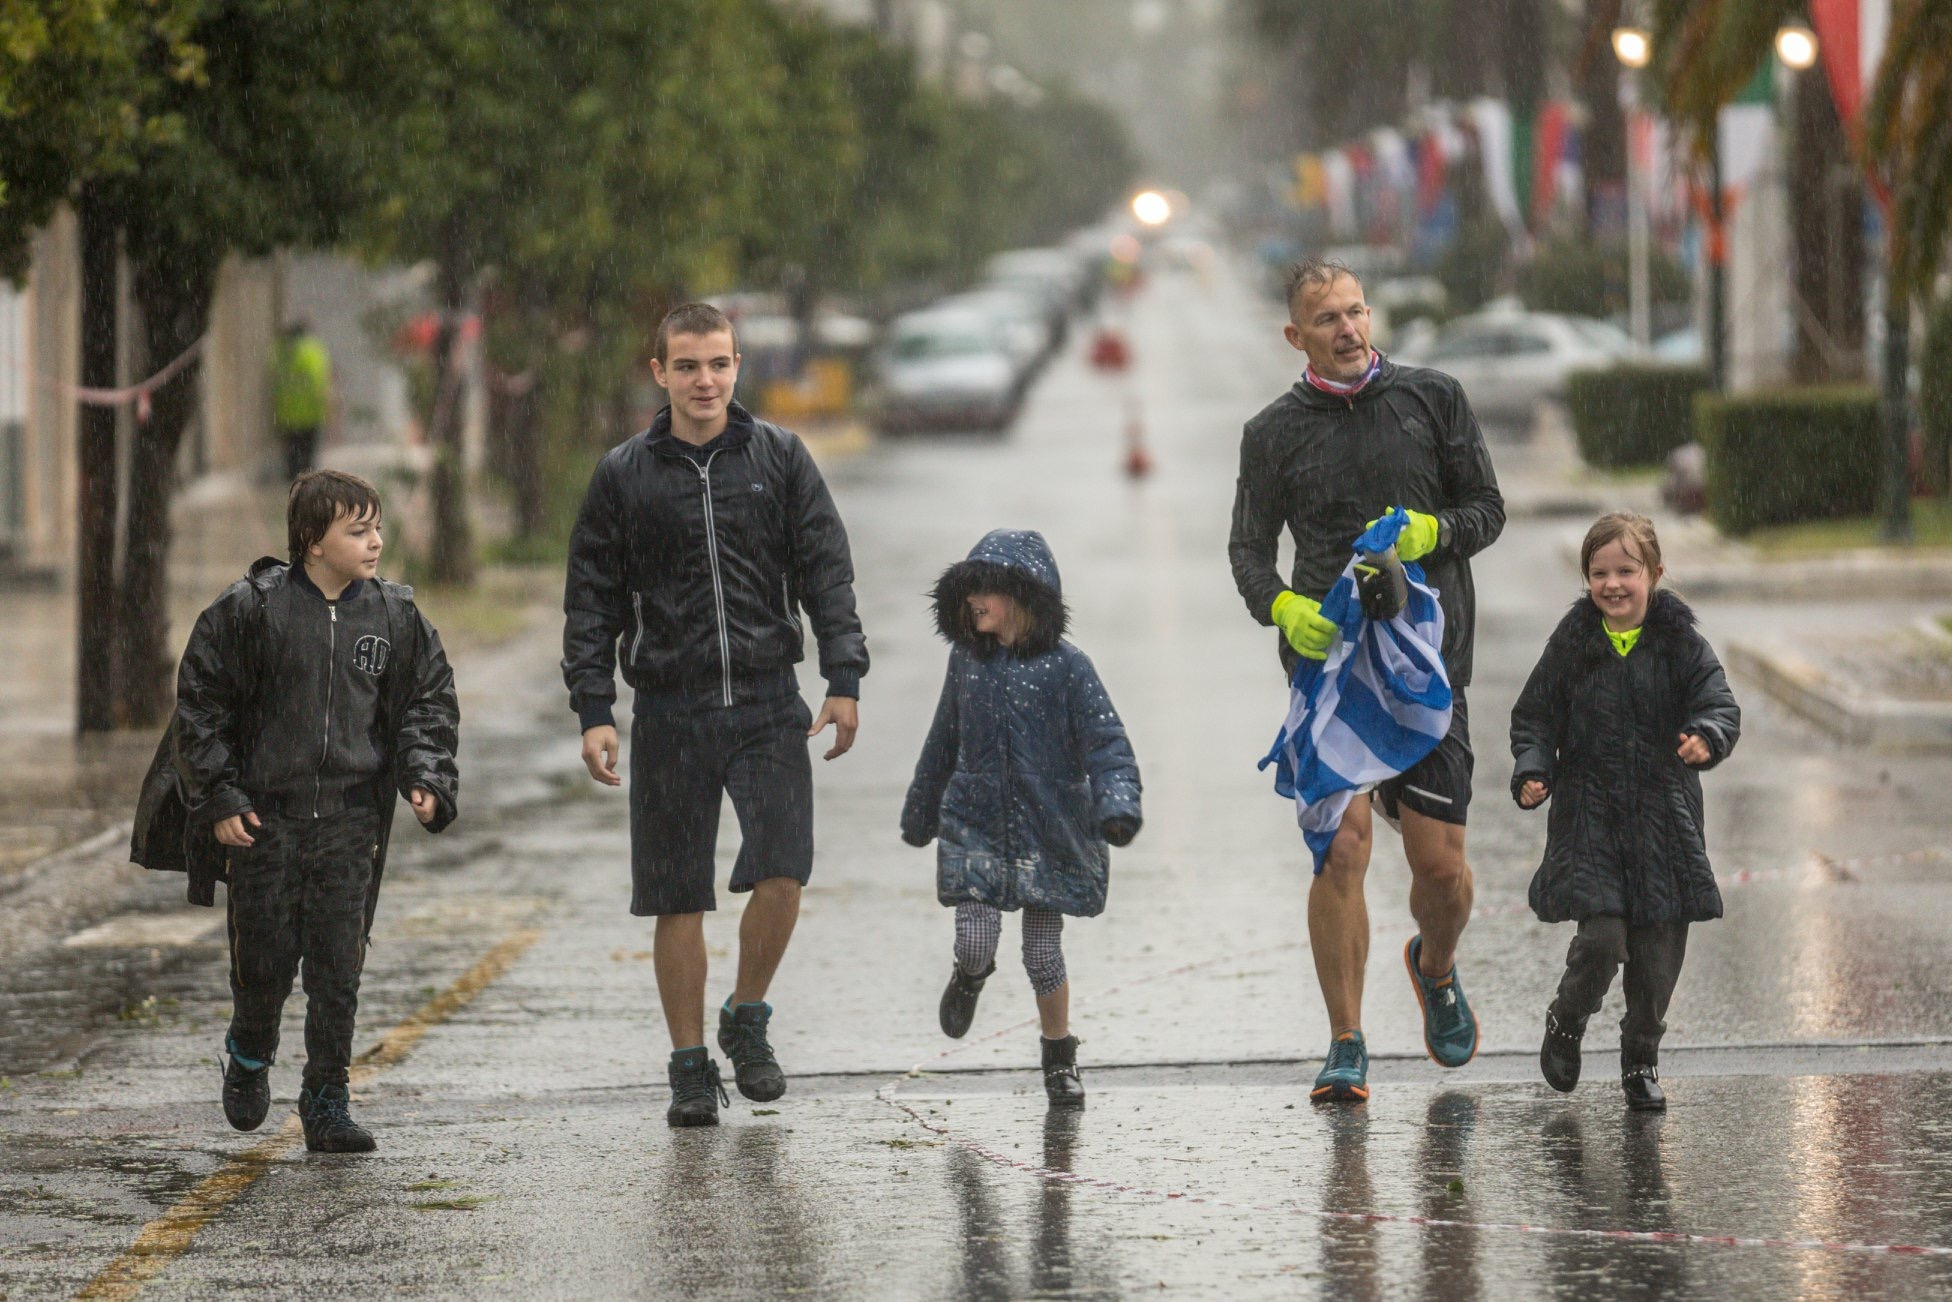 James bringing home #fourinarow with twin daughters and nephews - a special moment.  Photo Credit - Chris Mills